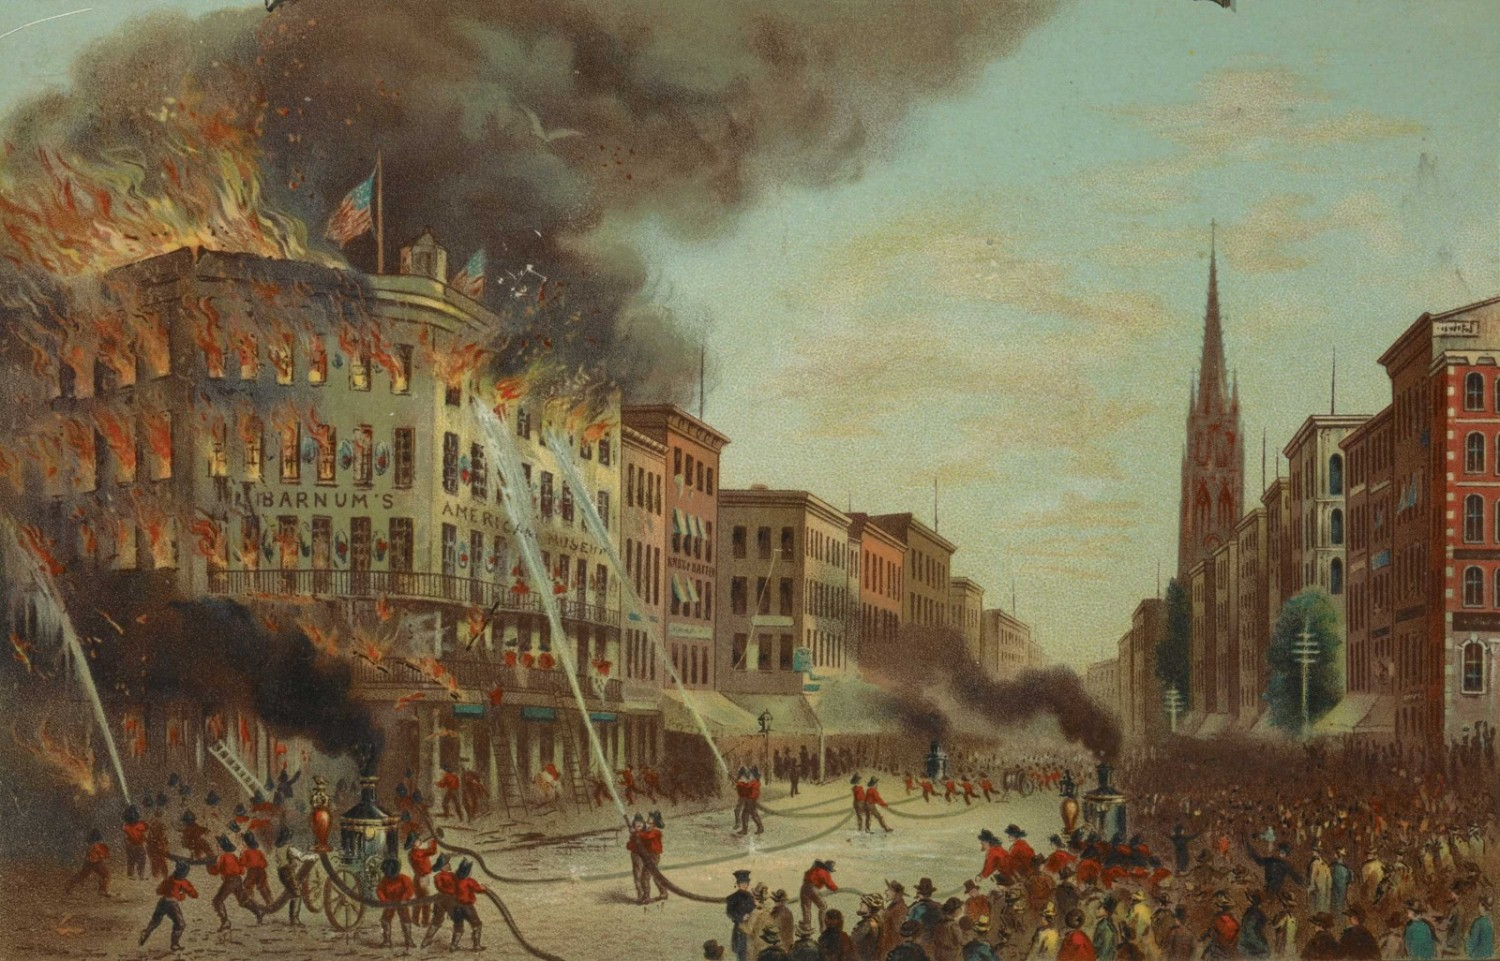 Christopher Pearse Cranch. Burning of Barnum's Museum, July 13th, 1865, 1865. Chromolithograph. Eno Collection Miriam and Ira D. Wallach Division of Art, Prints and Photographs, The New York Public Library